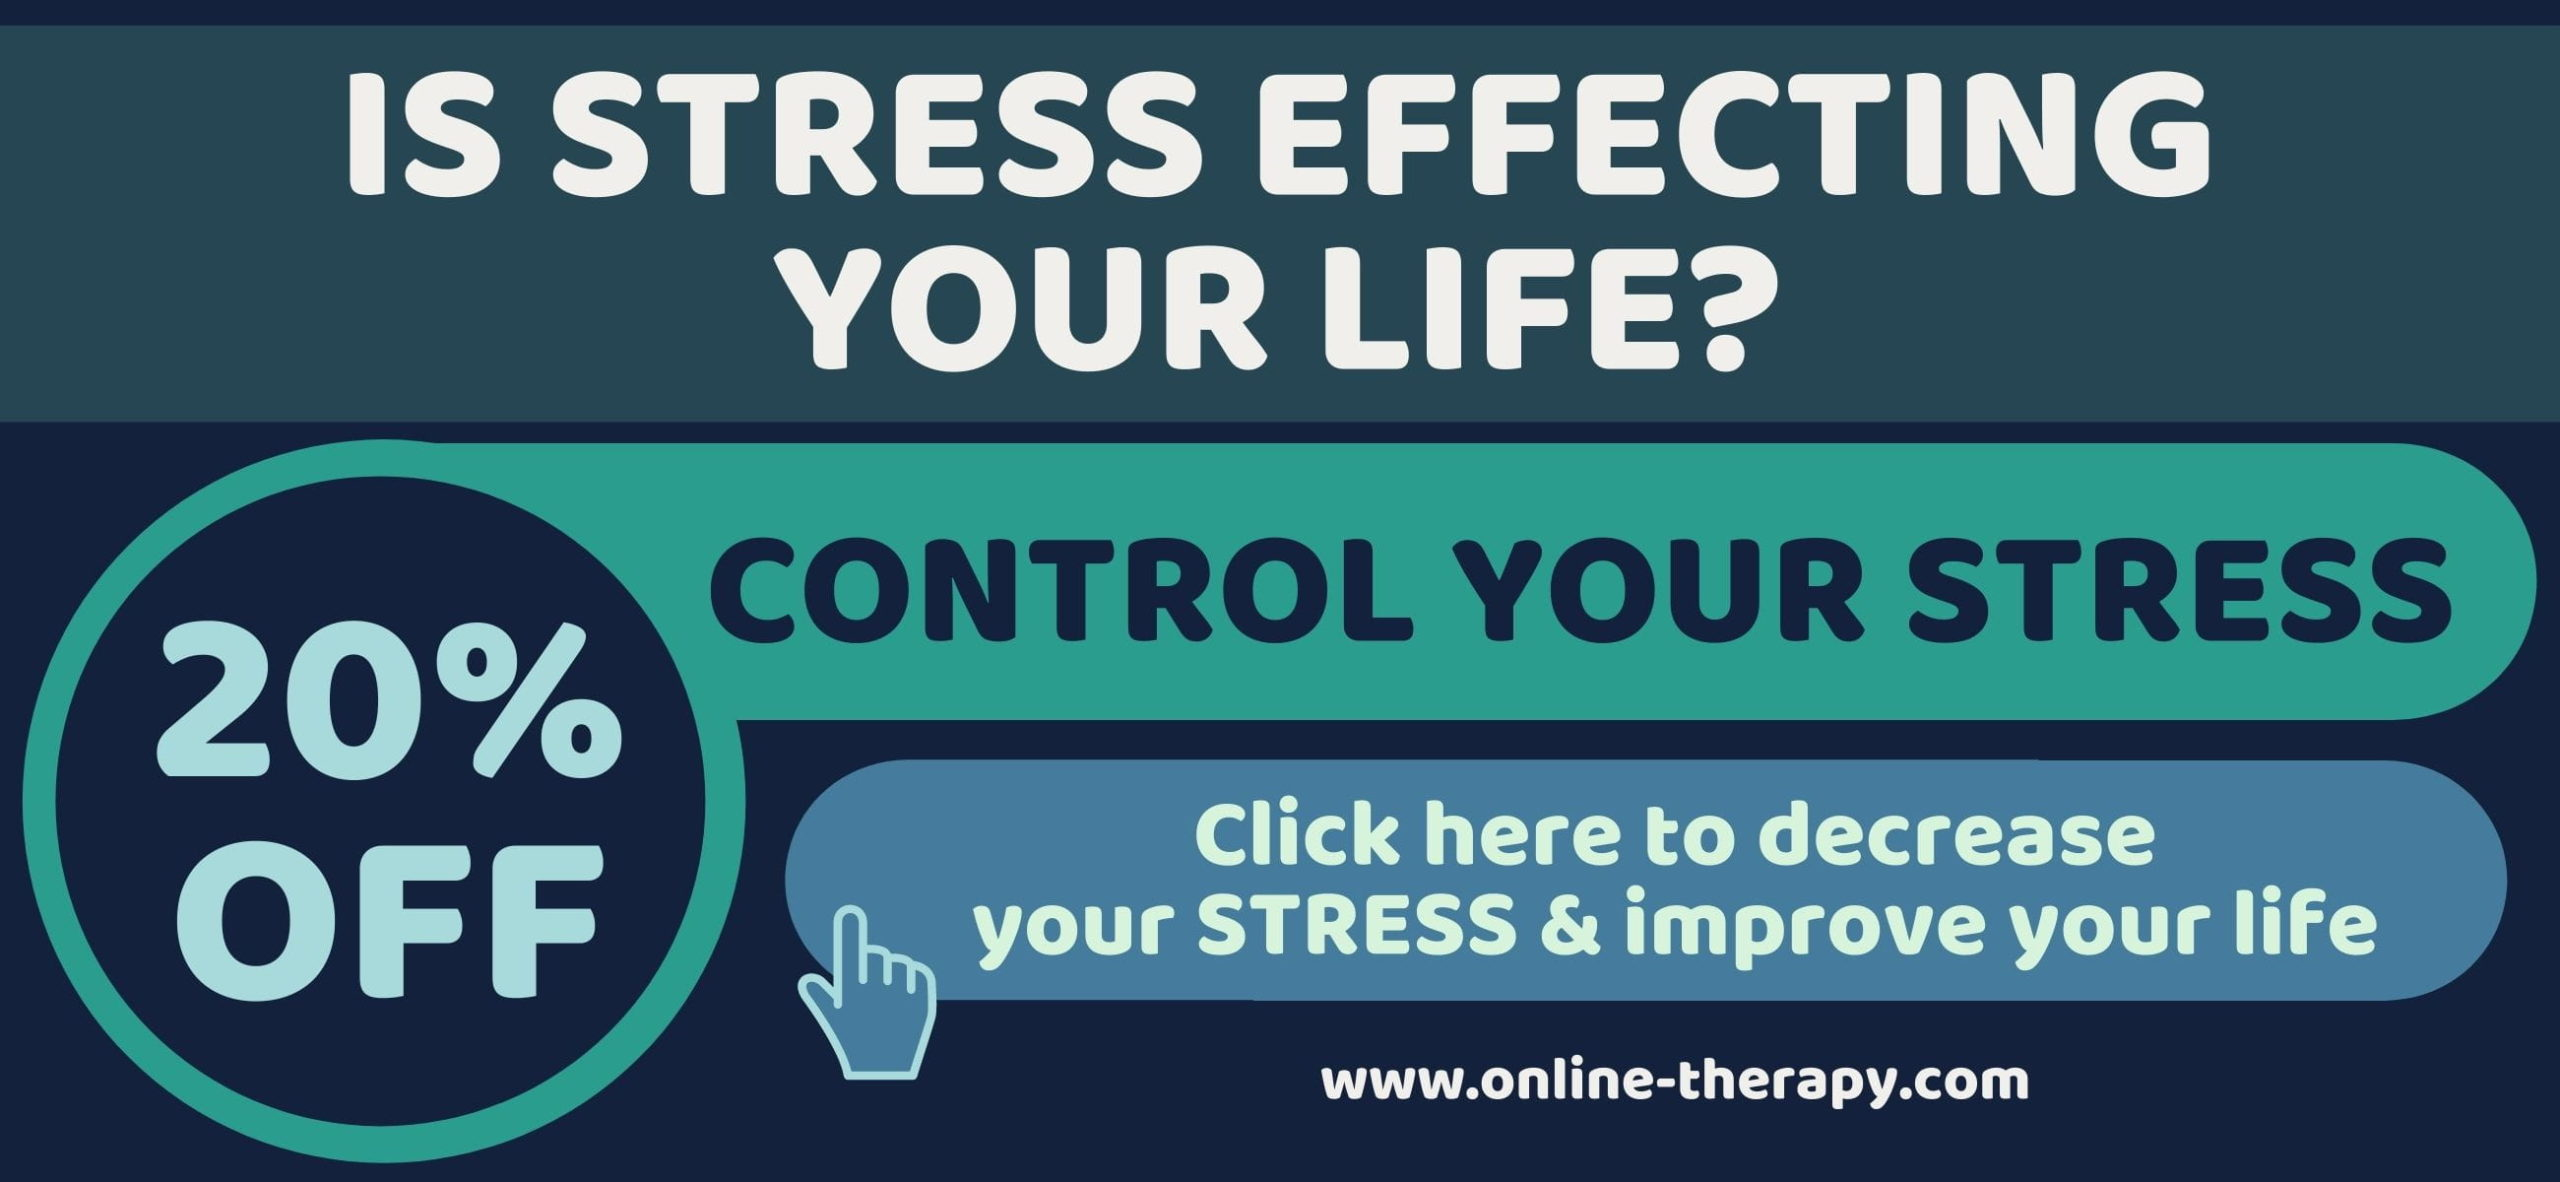 IS STRESS EFFECTING YOUR LIFE_-min